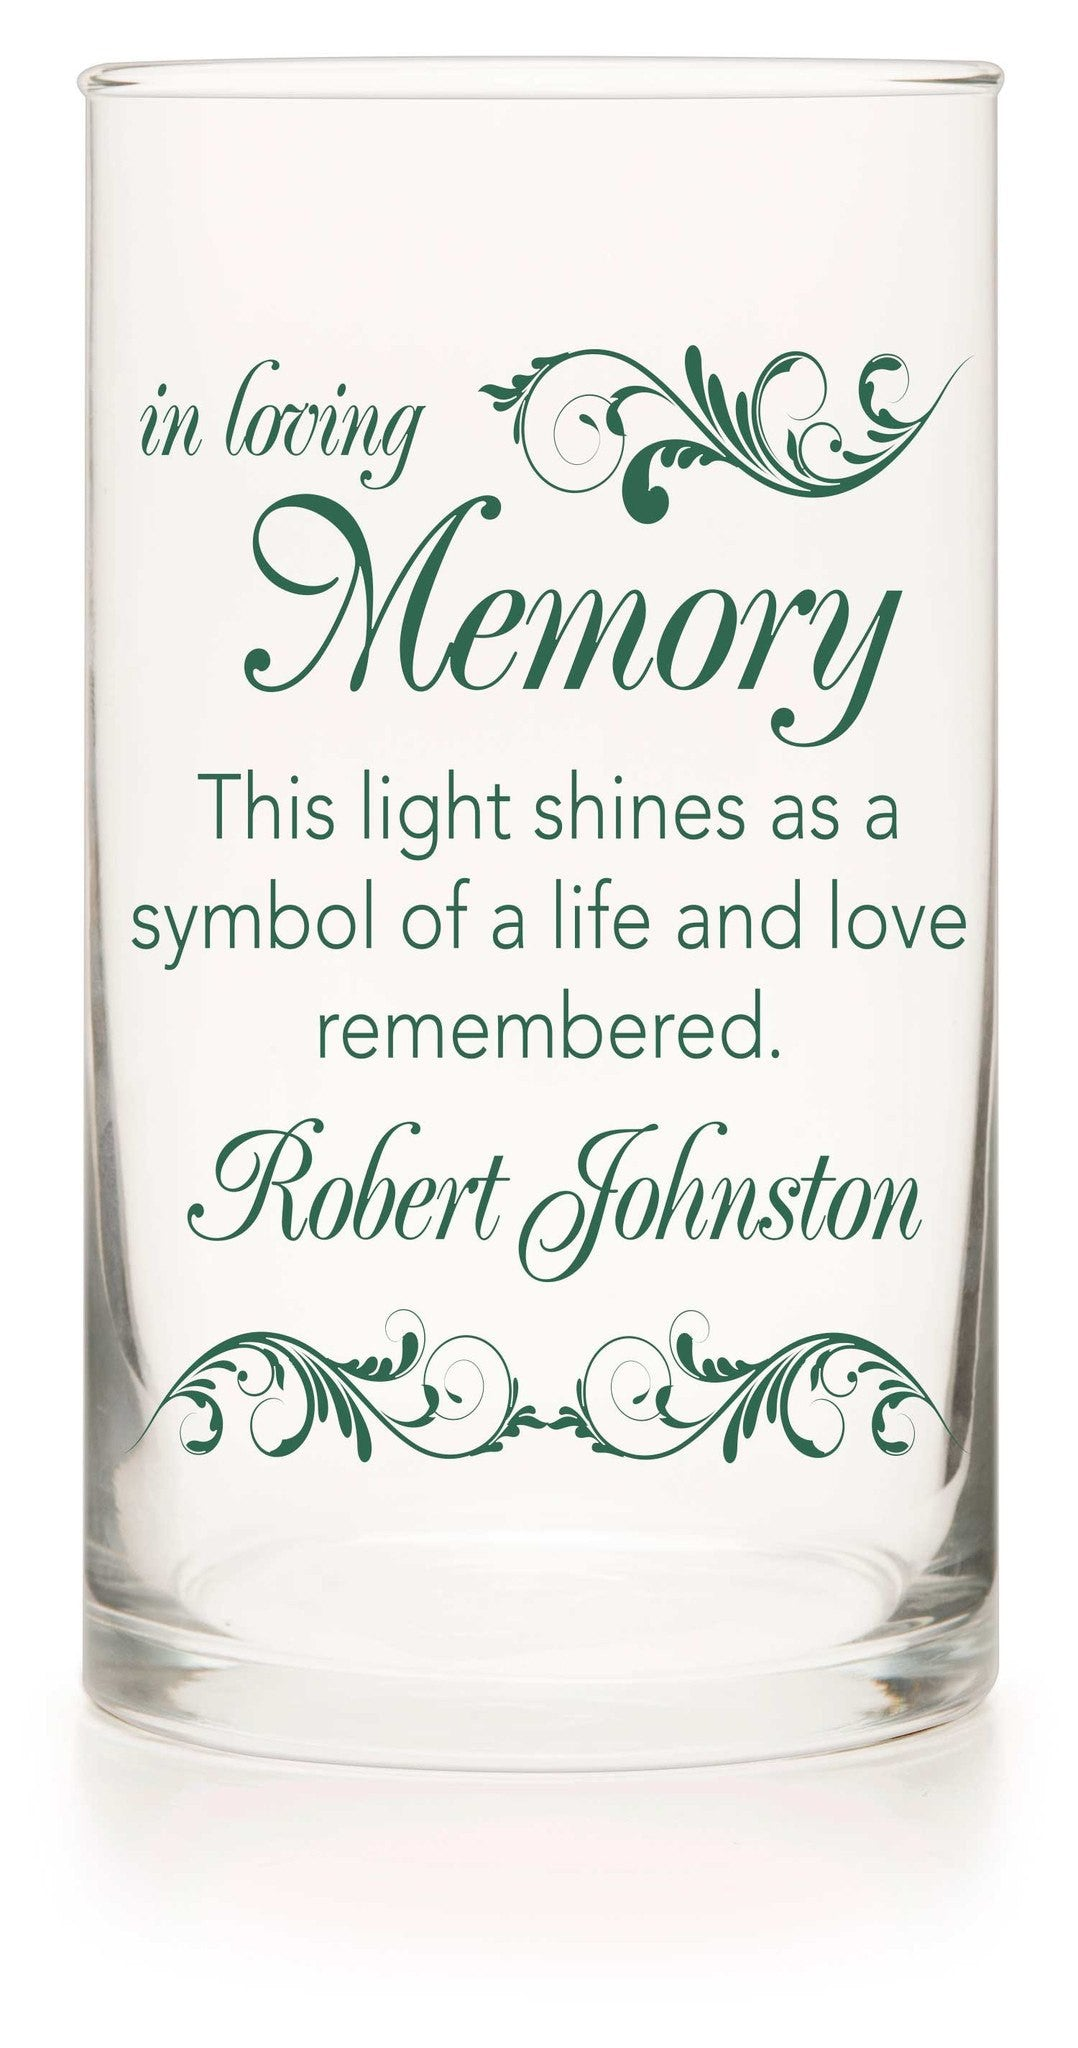 Memorial Candle - Wedded Bliss Green - Personalized Candle Holders - Wedding Candles - 5